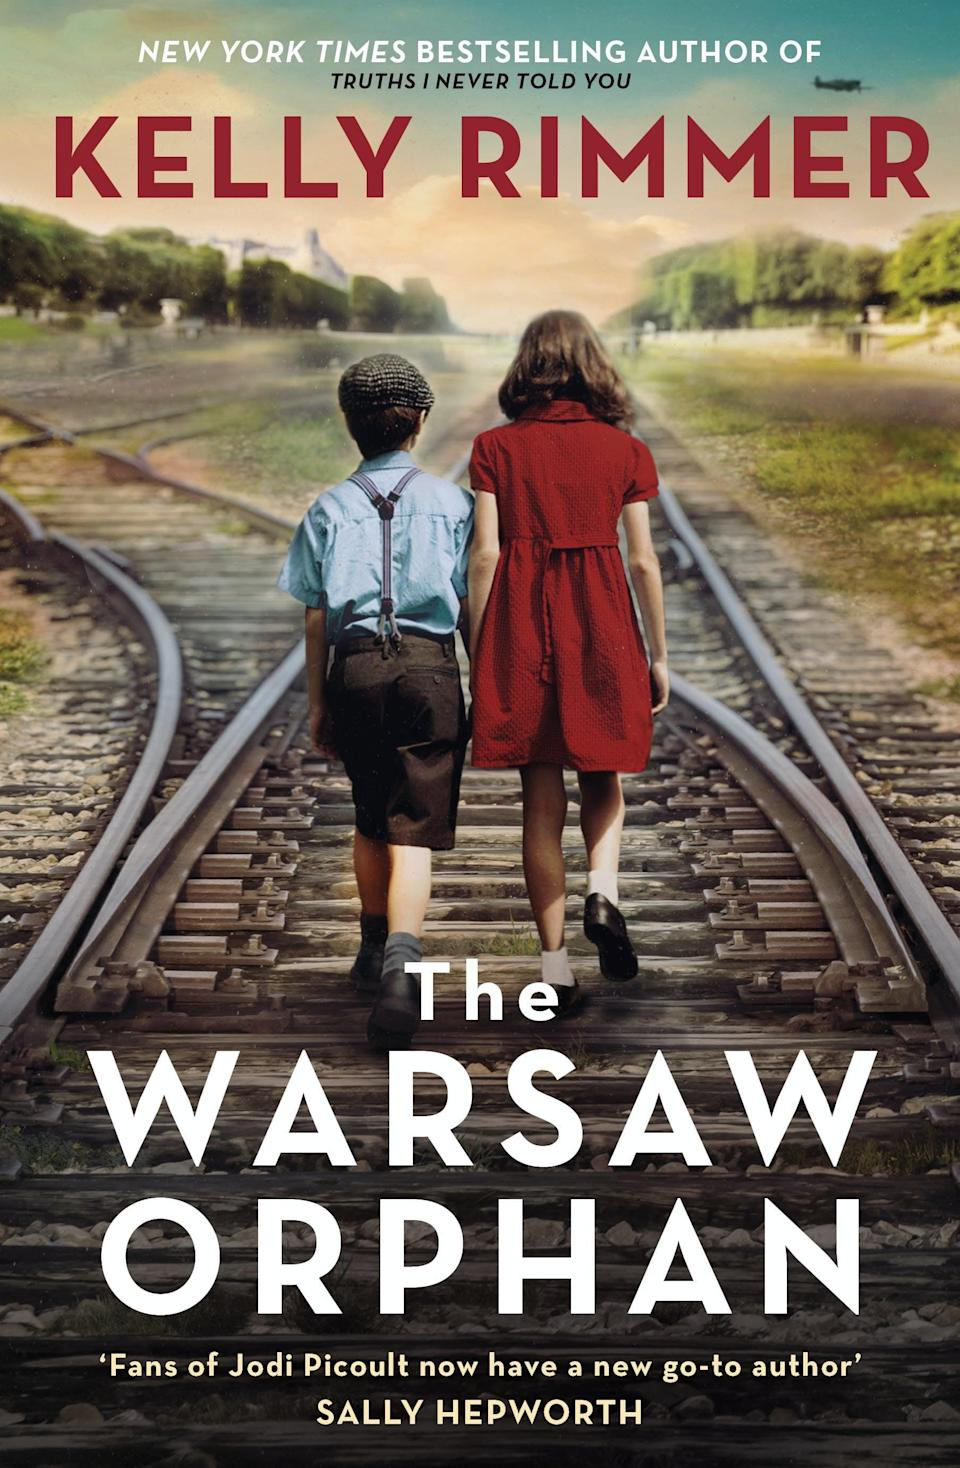 <p>Inspired by a true story, <span><strong>The Warsaw Orphan</strong></span> by Kelly Rimmer is an epic historical novel set in 1942 Warsaw. It's there that Elzbieta Rabinek is desperately trying to hide her true identity to avoid the attention of the Germans. However, when faced with atrocities beyond the walls of her home, she has no choice but to wade into the growing conflict. </p> <p><em>Out June 1</em></p>